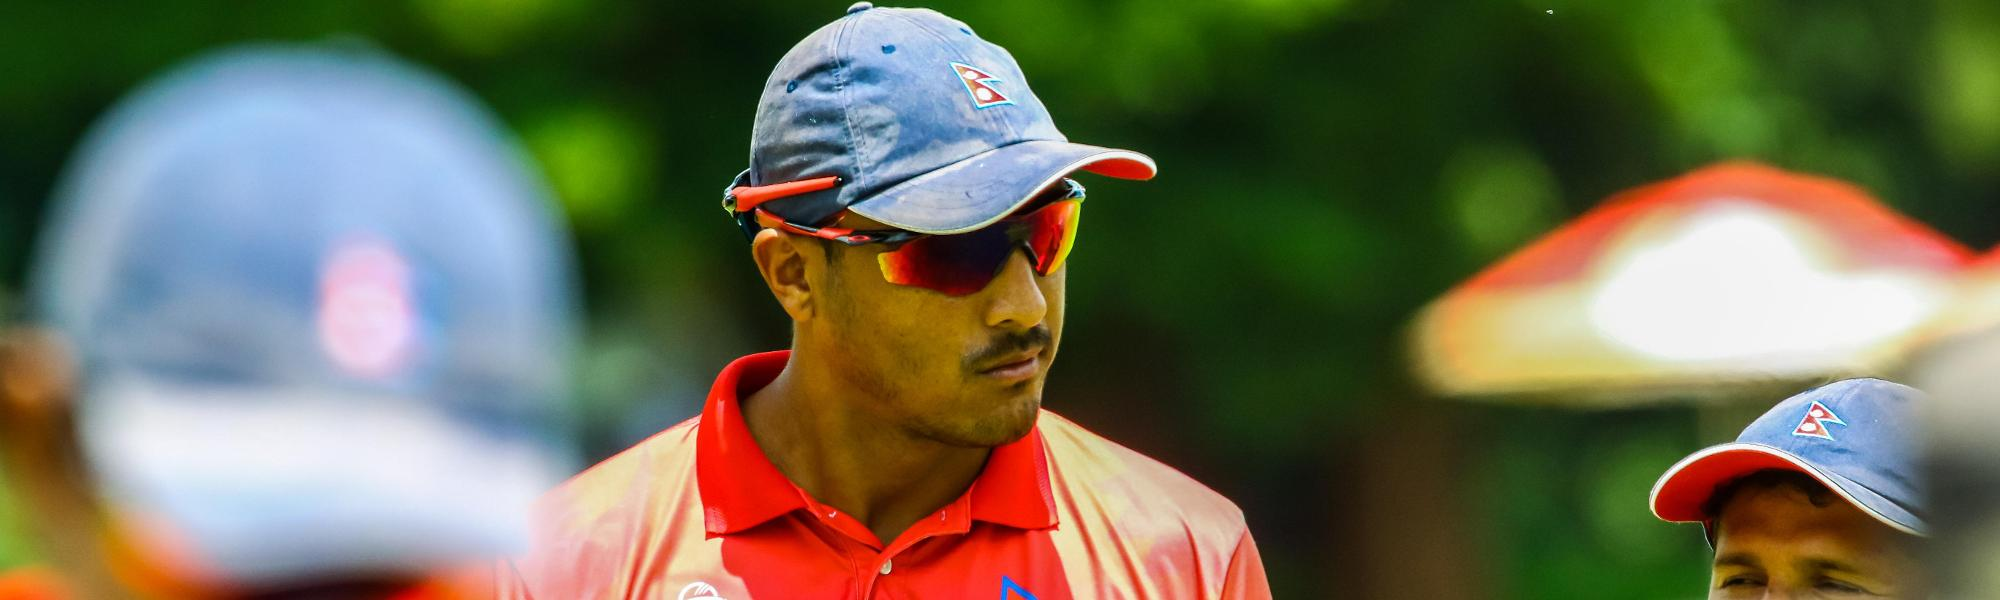 Nepal captain Paras Khadka hopes to lead his side to the T20 Men's Cricket World Cup 2020